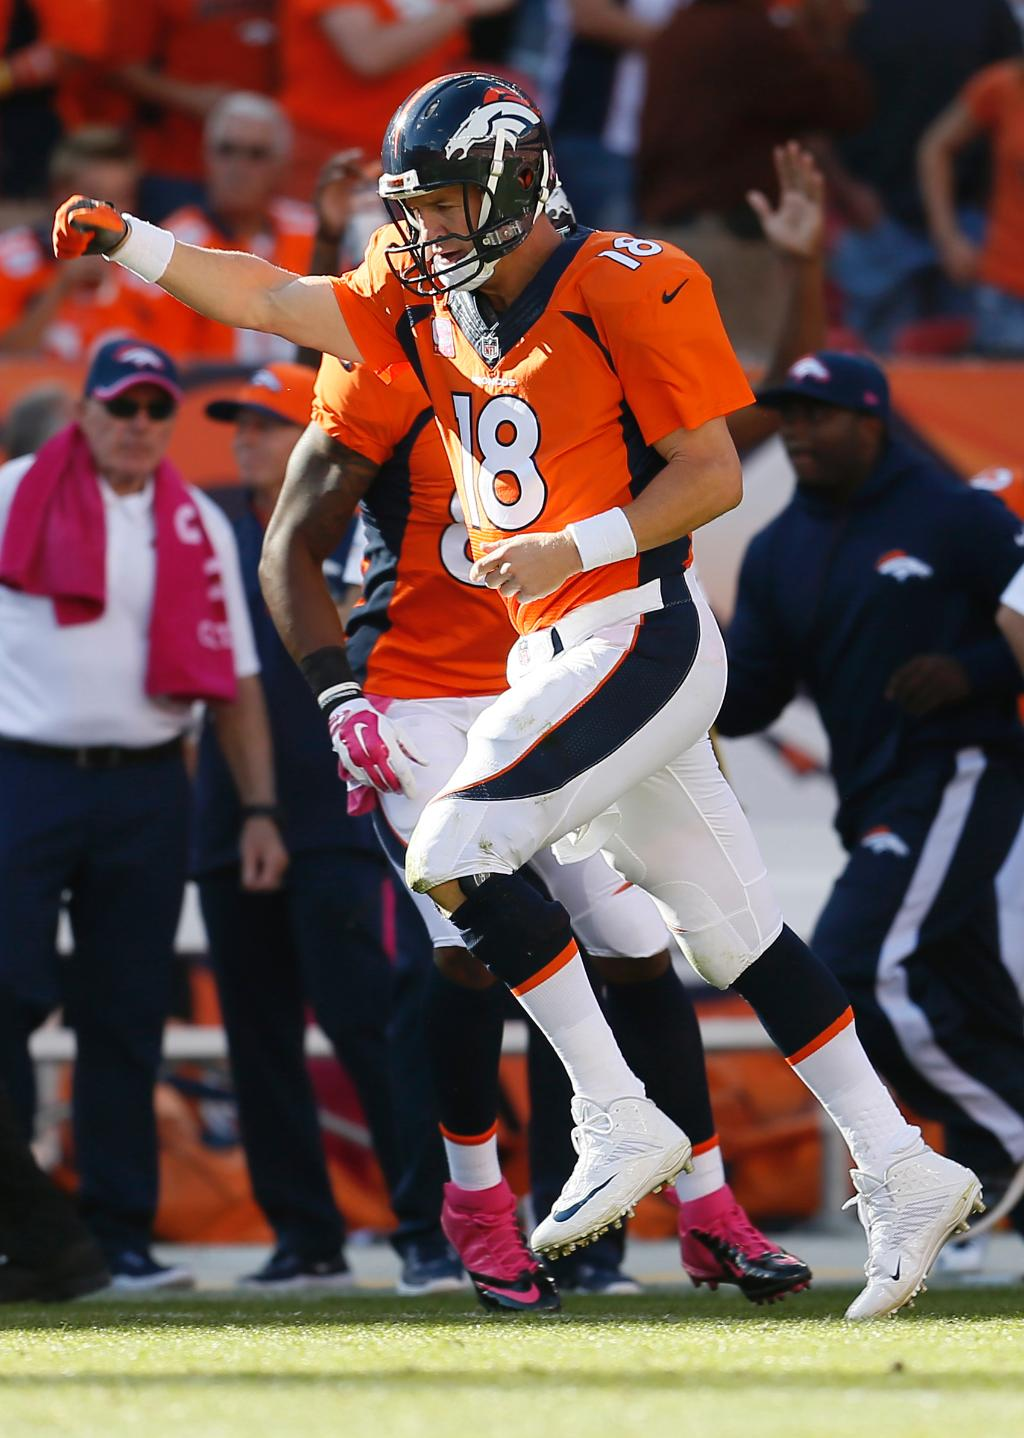 Peyton Manning quietly approaches Brett Favre's all-time record of 508 TD throws